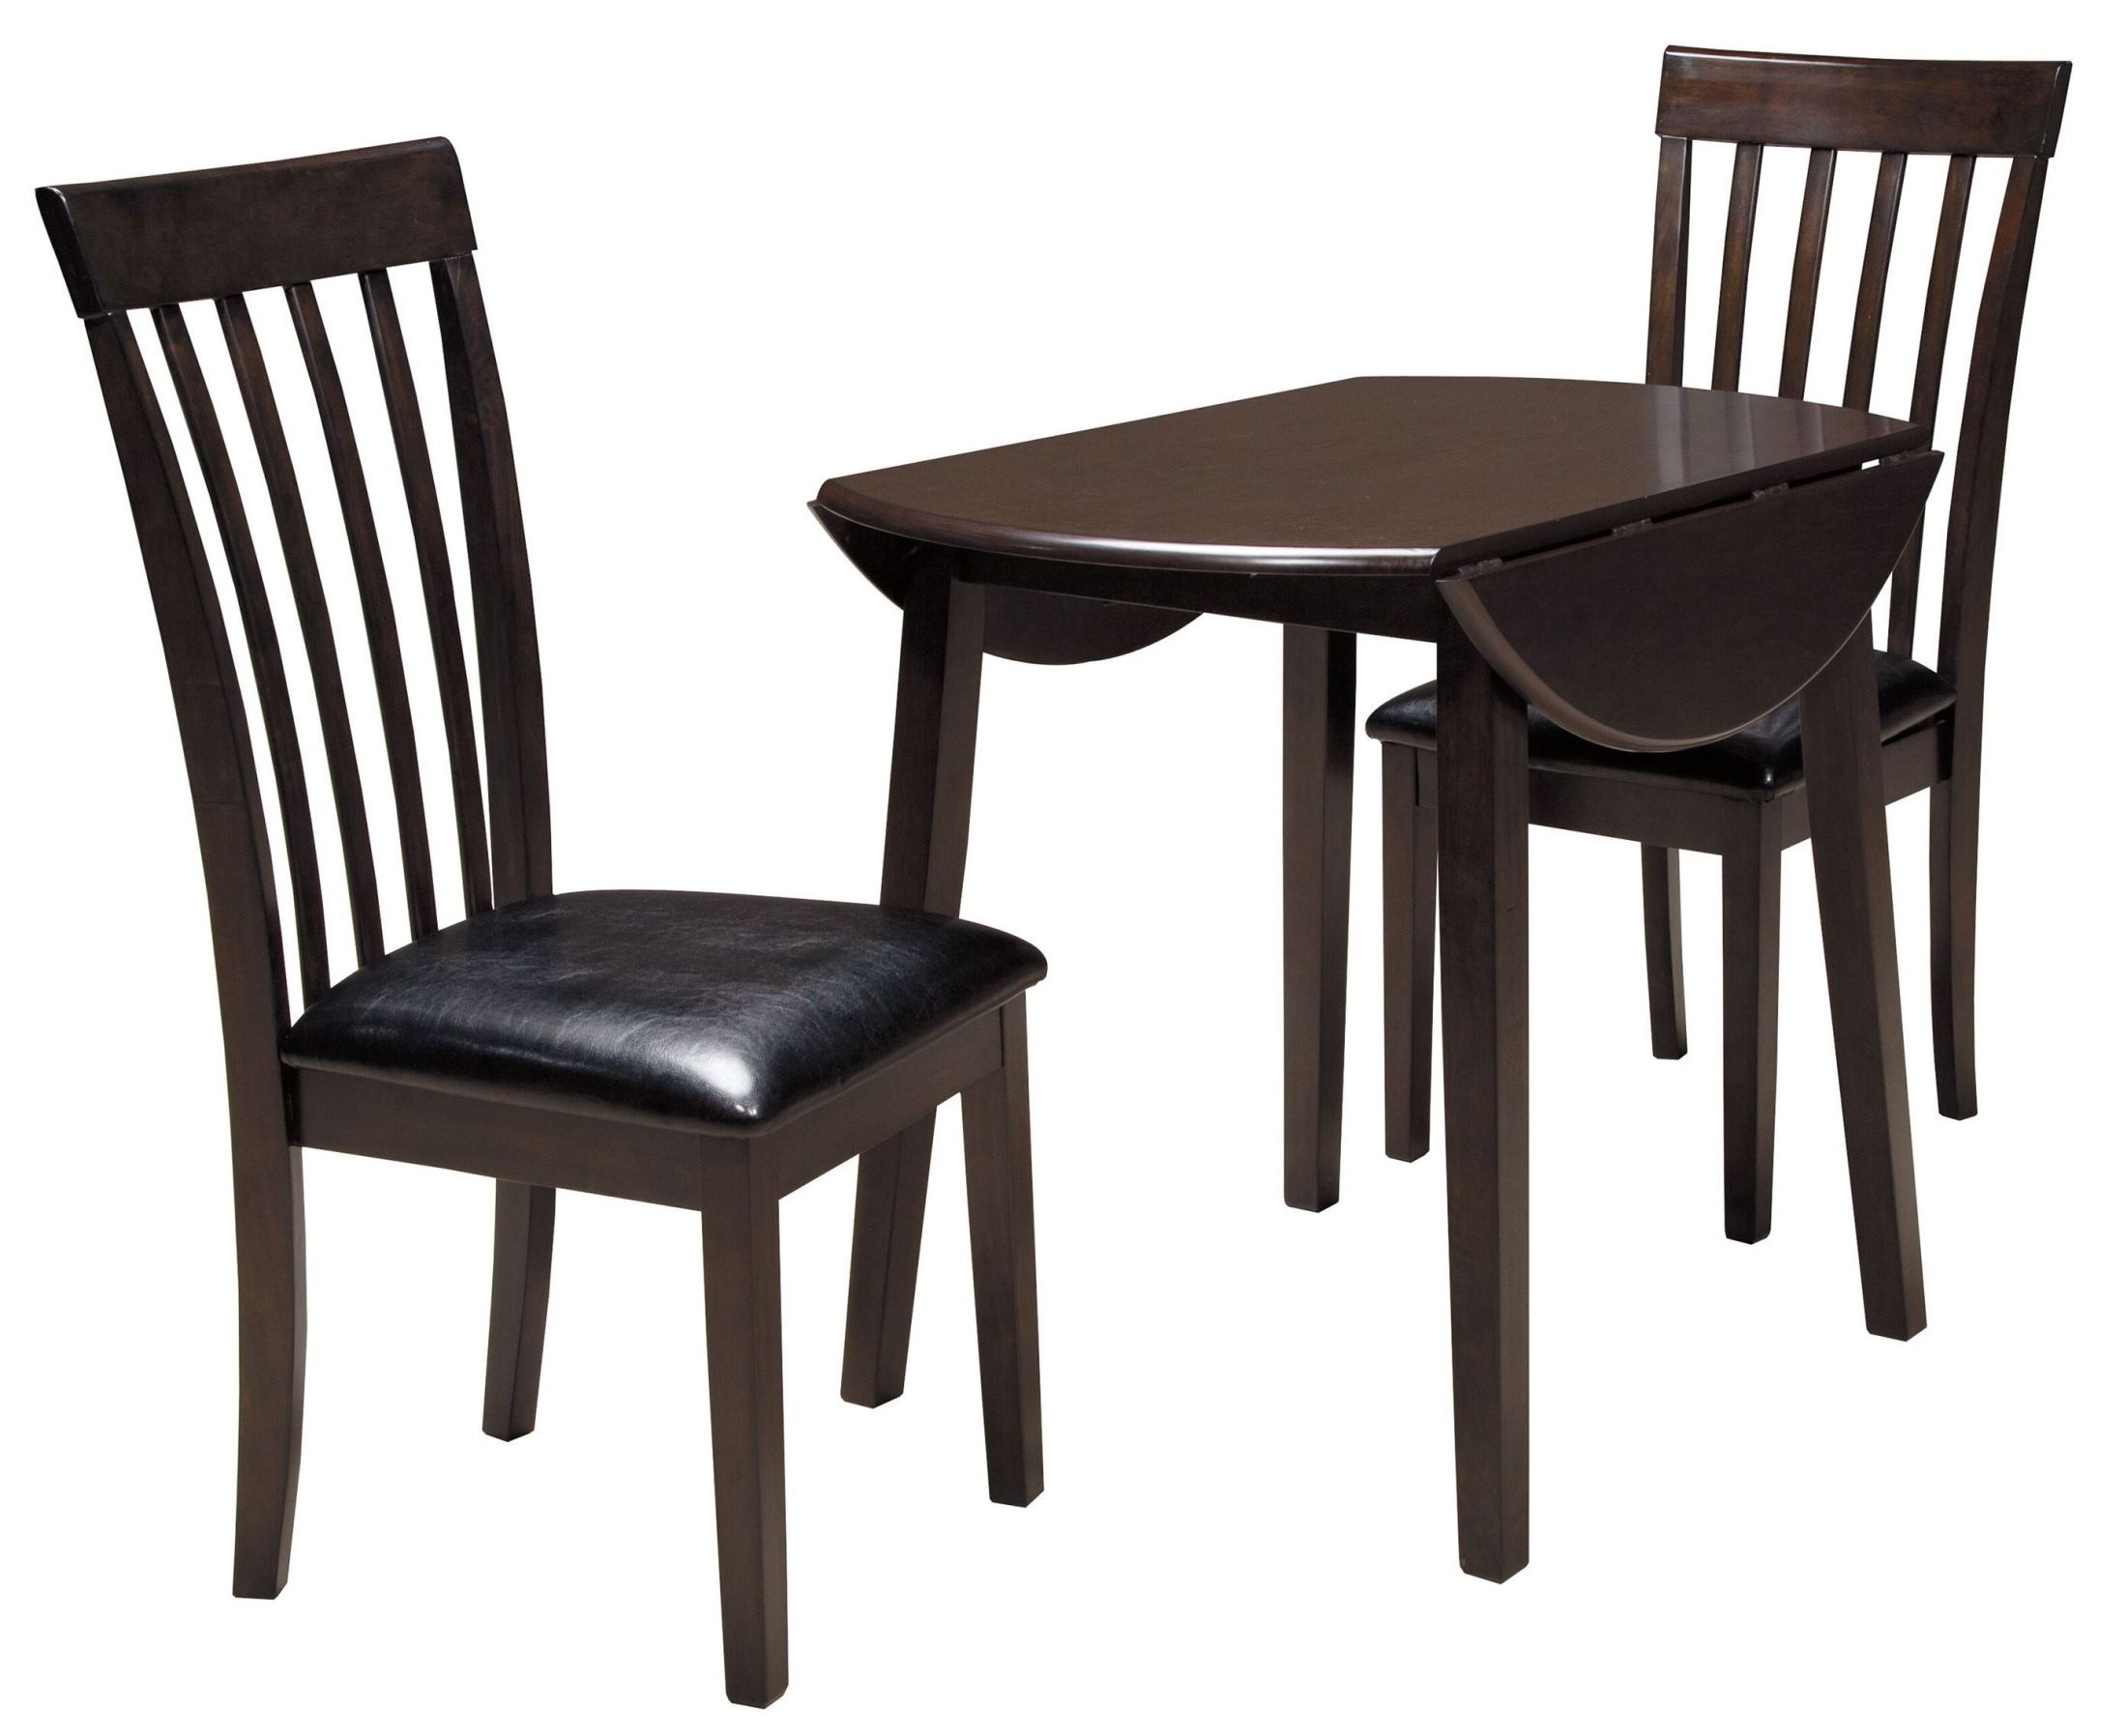 Hammis round drop leaf dining room set from ashley d310 for Round dining set with leaf